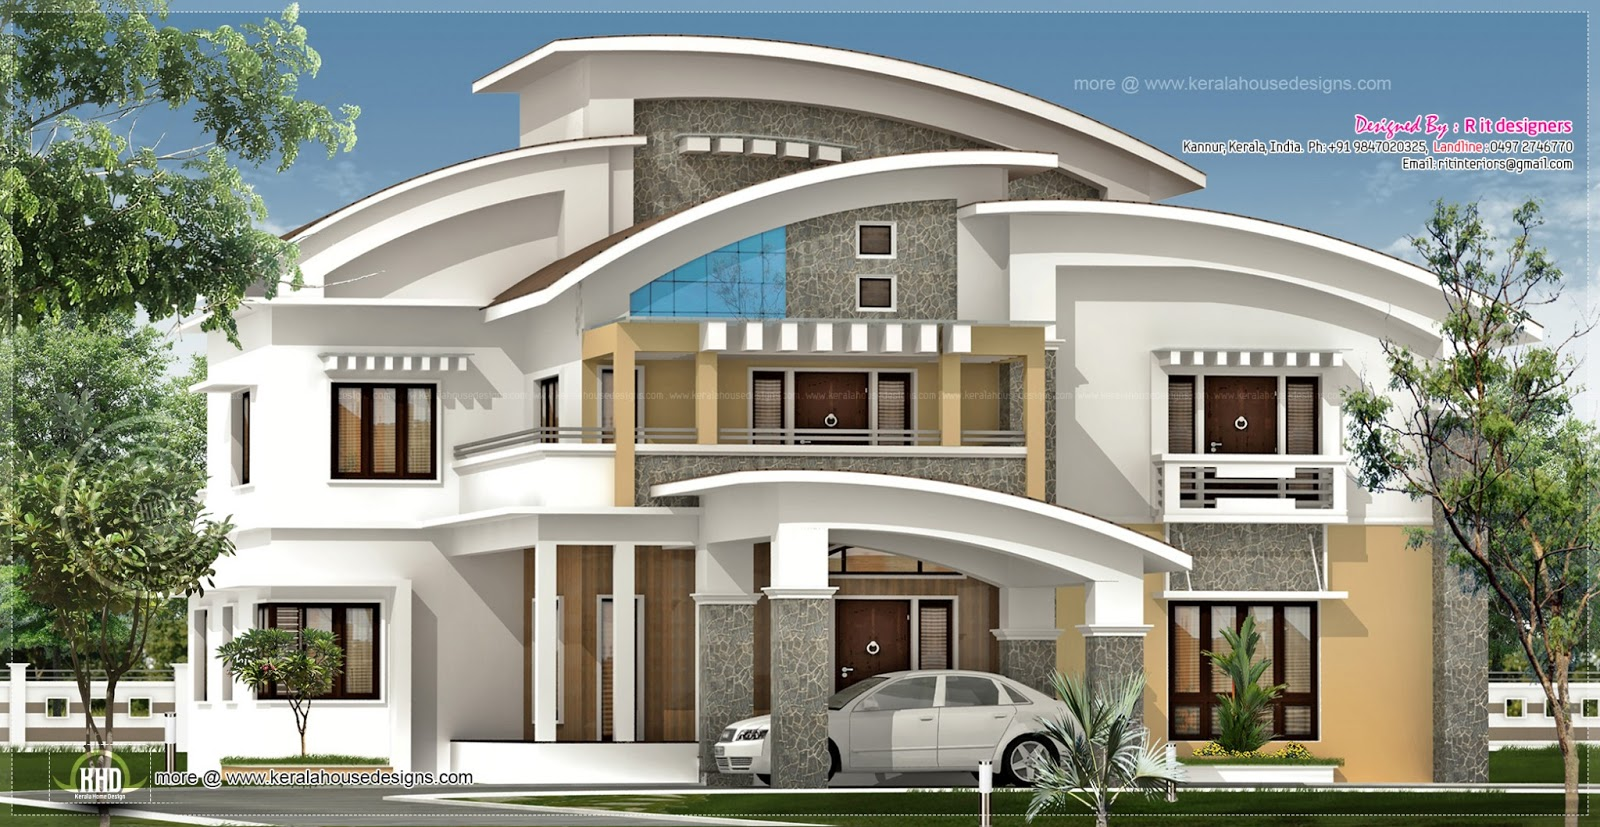 Luxury Home Design Plans 3750 Square Feet Luxury Villa Exterior House Design Plans